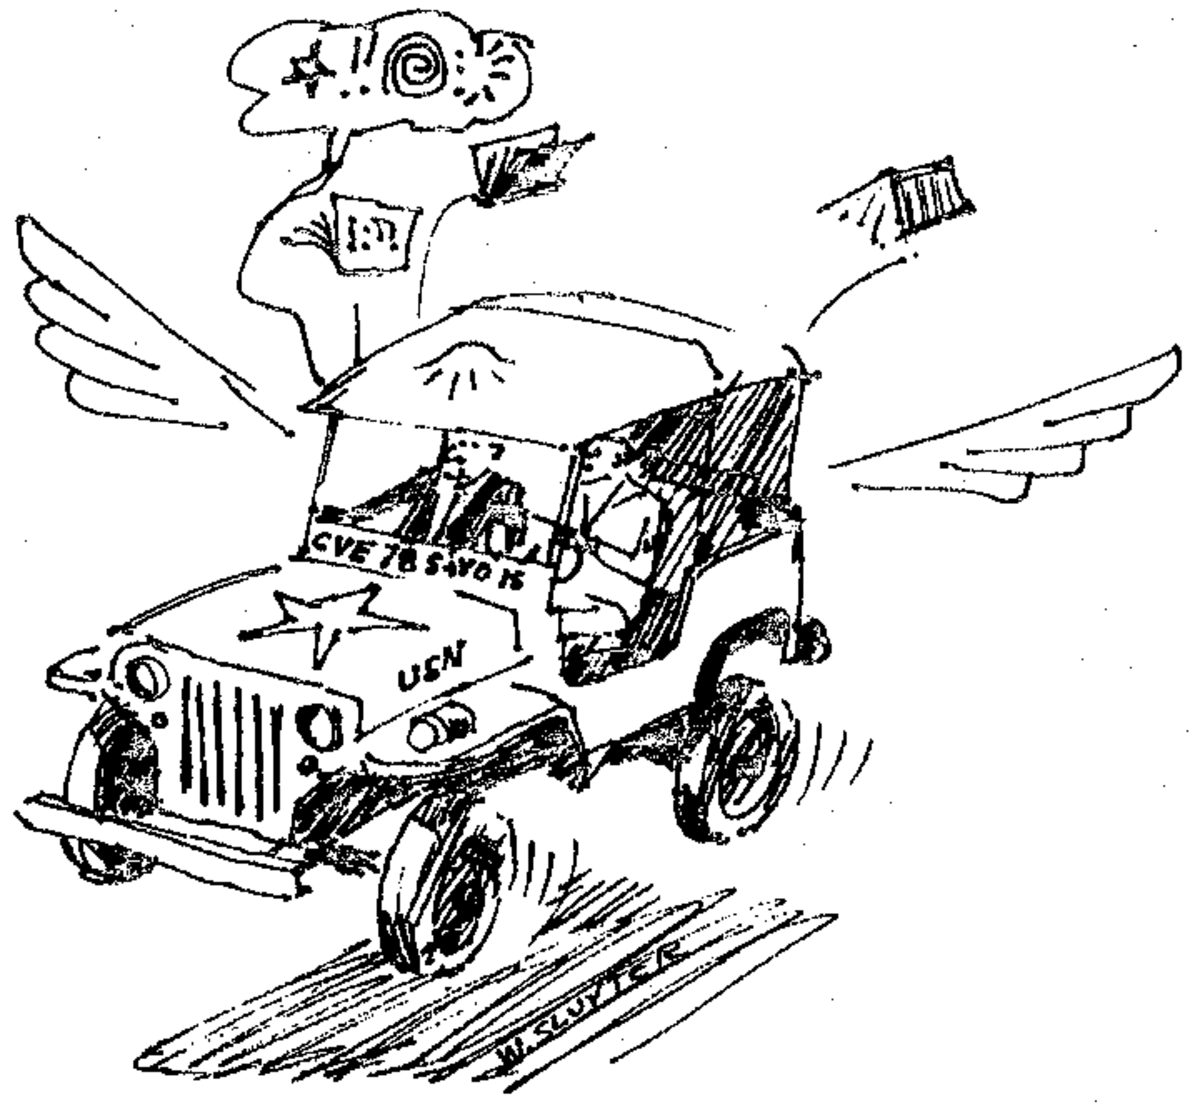 Cartoon drawing of the flying Jeep and chaplain of CVE 78